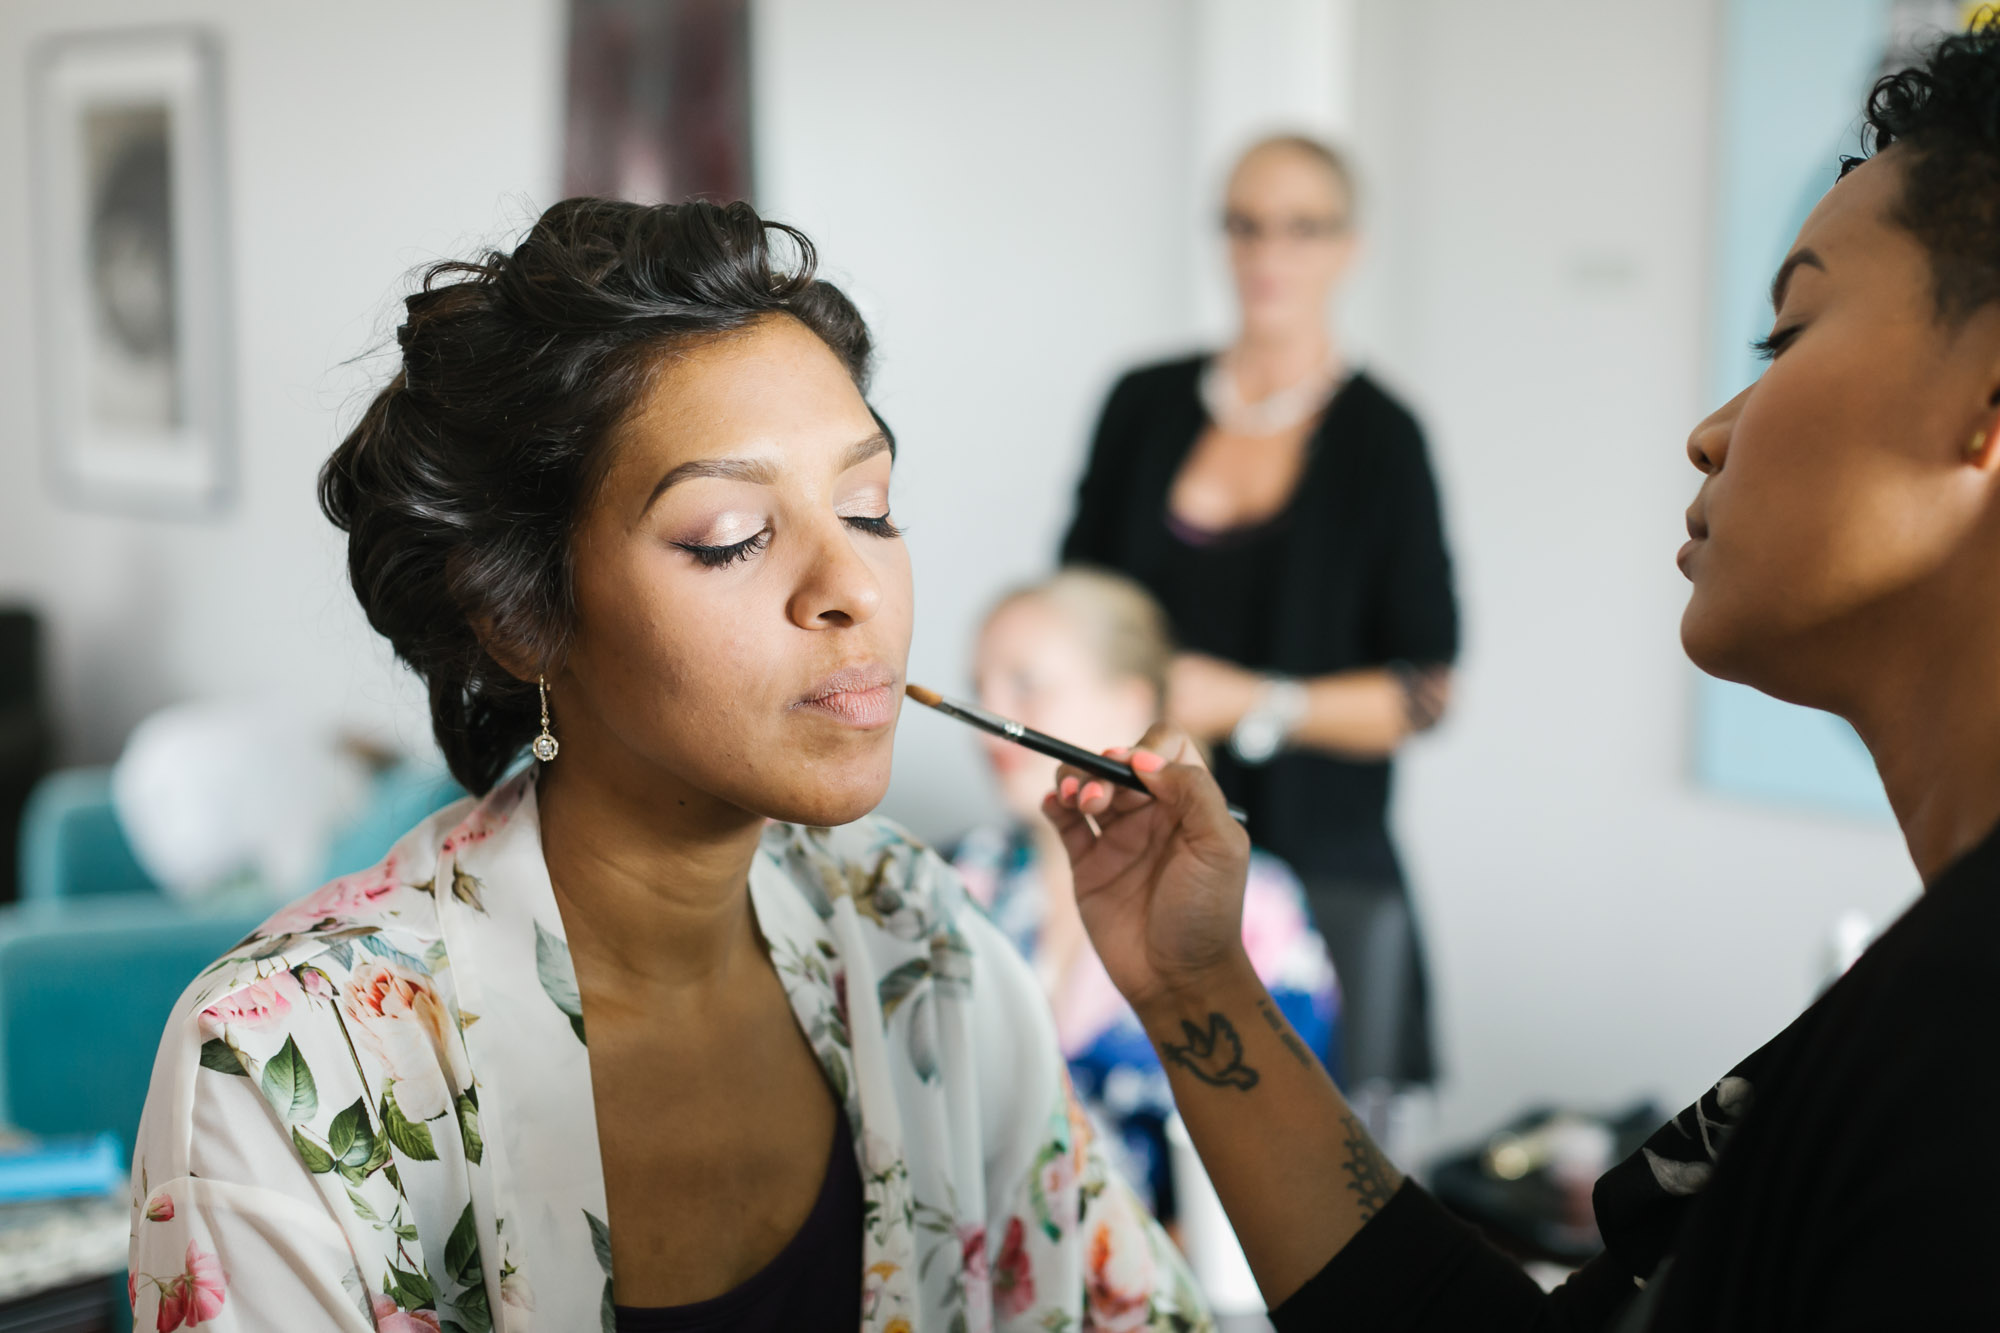 Bride gets her makeup done wearing white floral robe